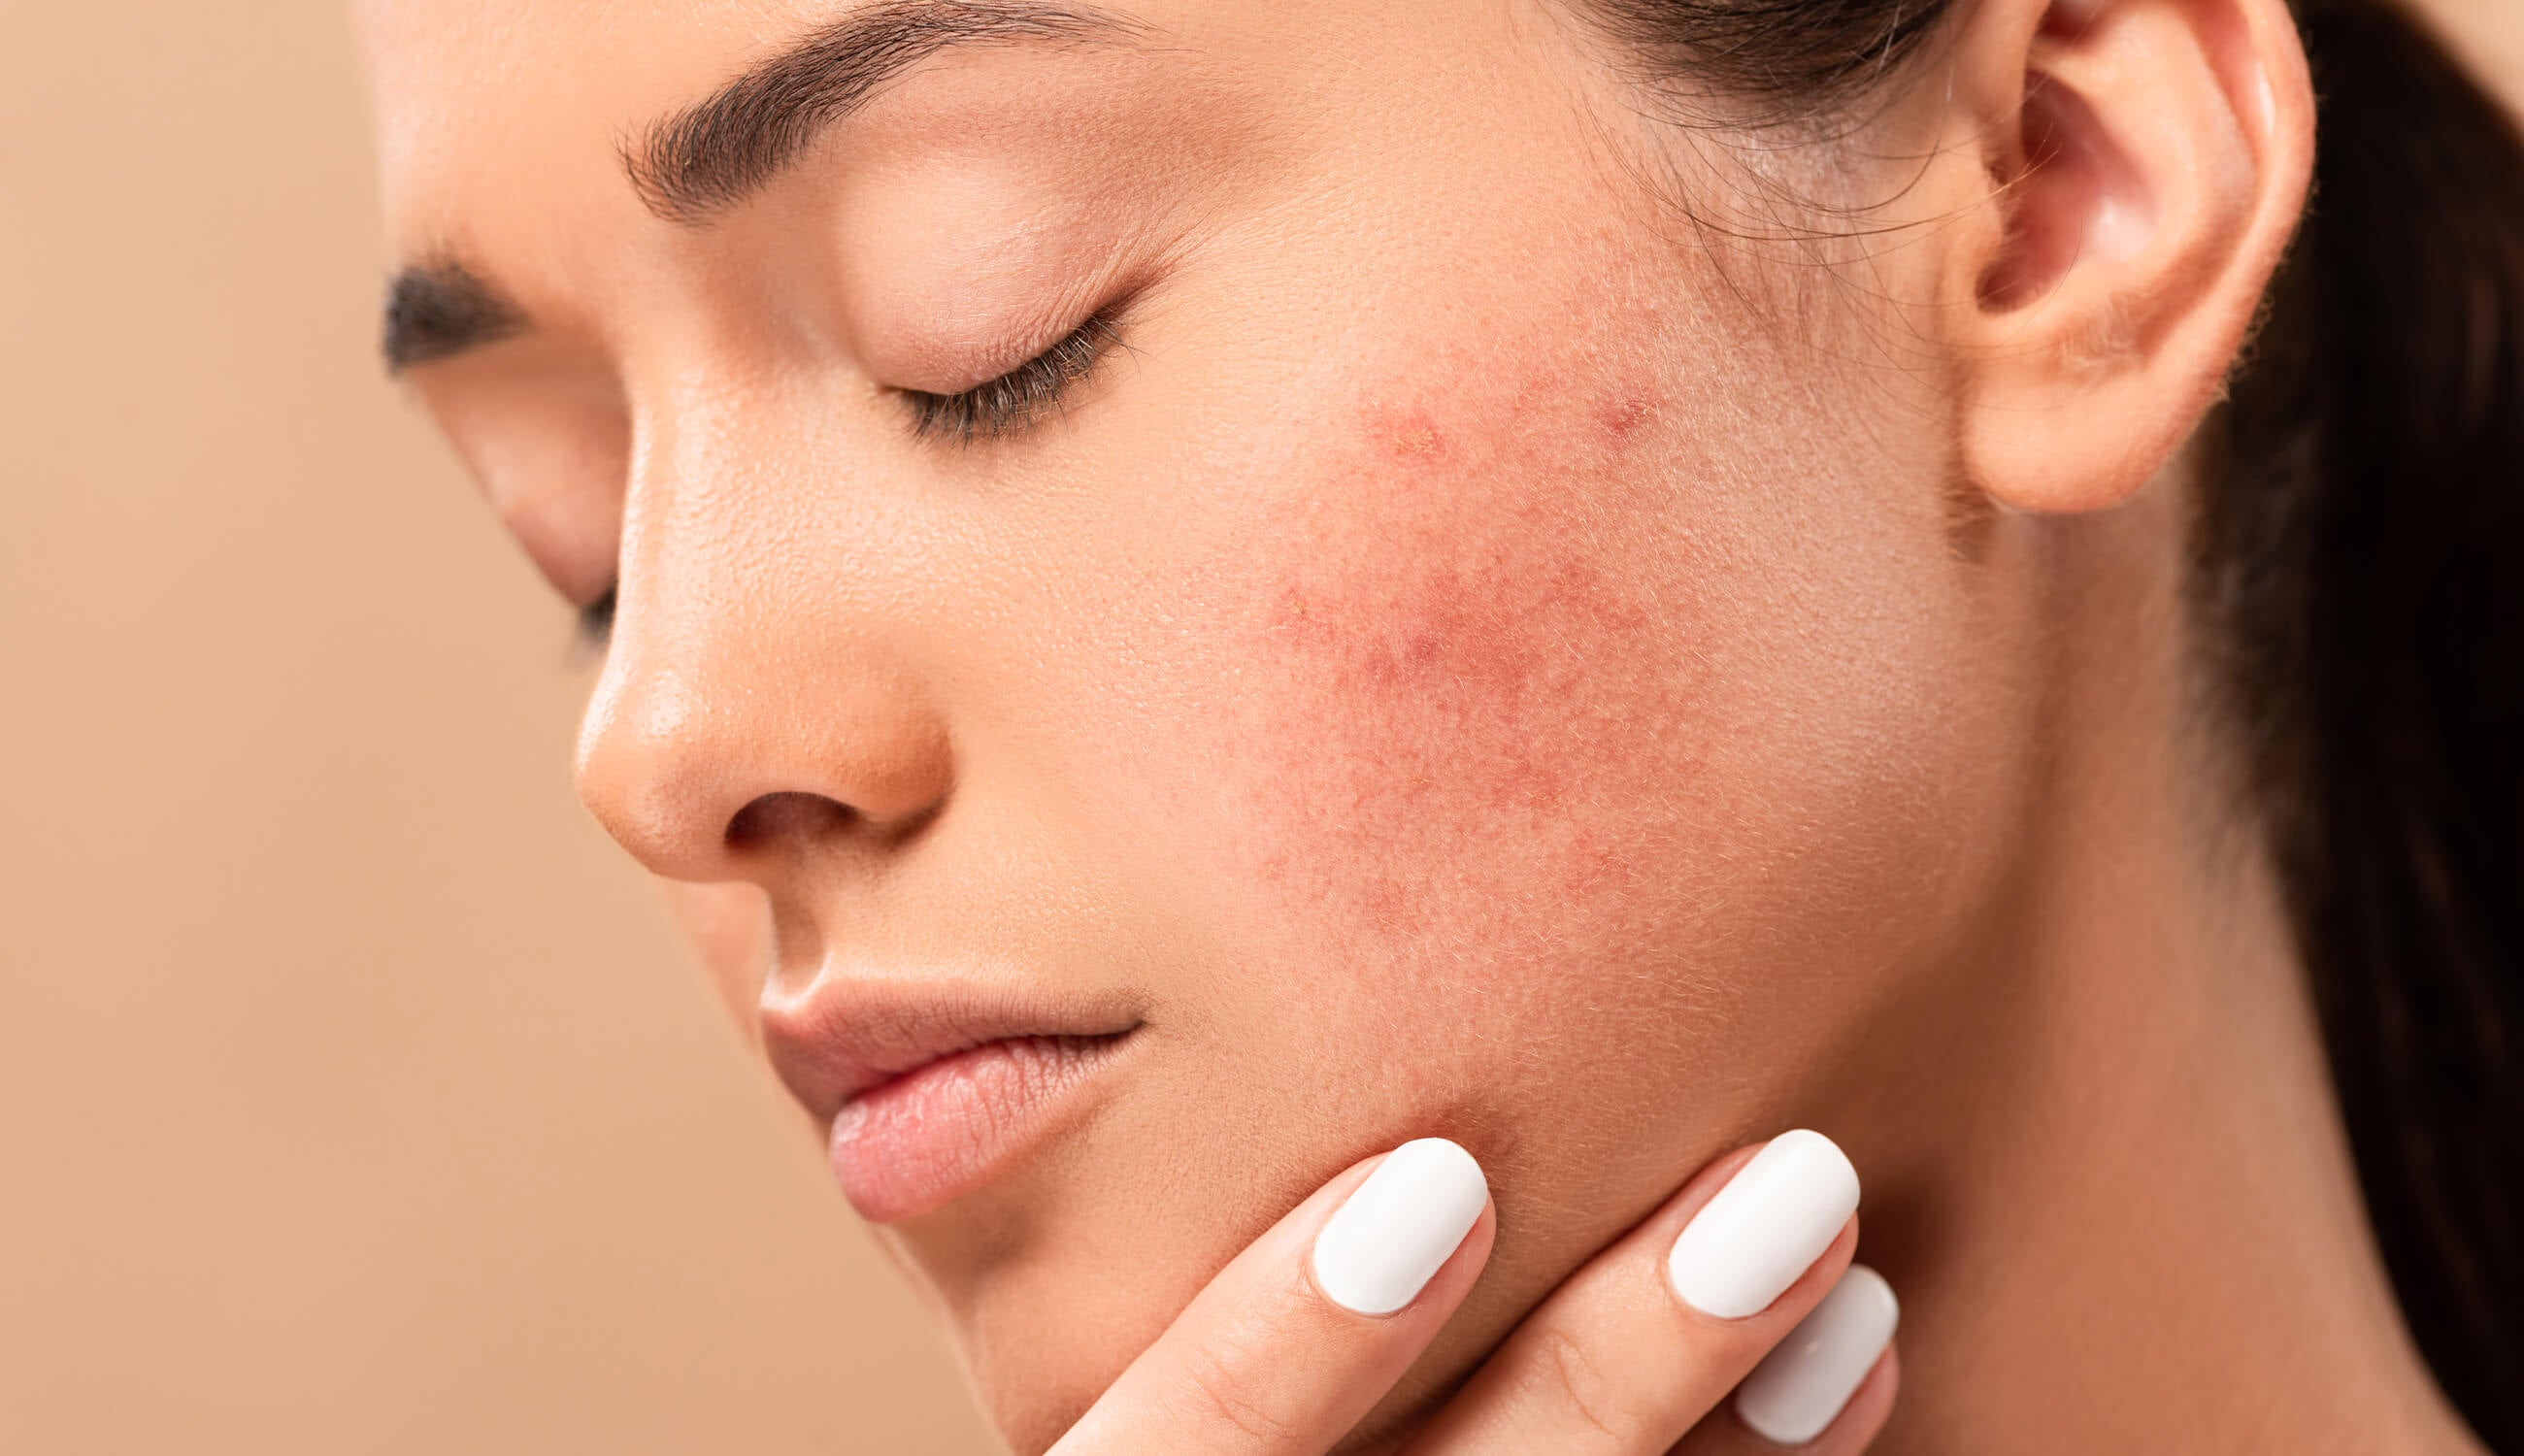 Woman's skin with redness